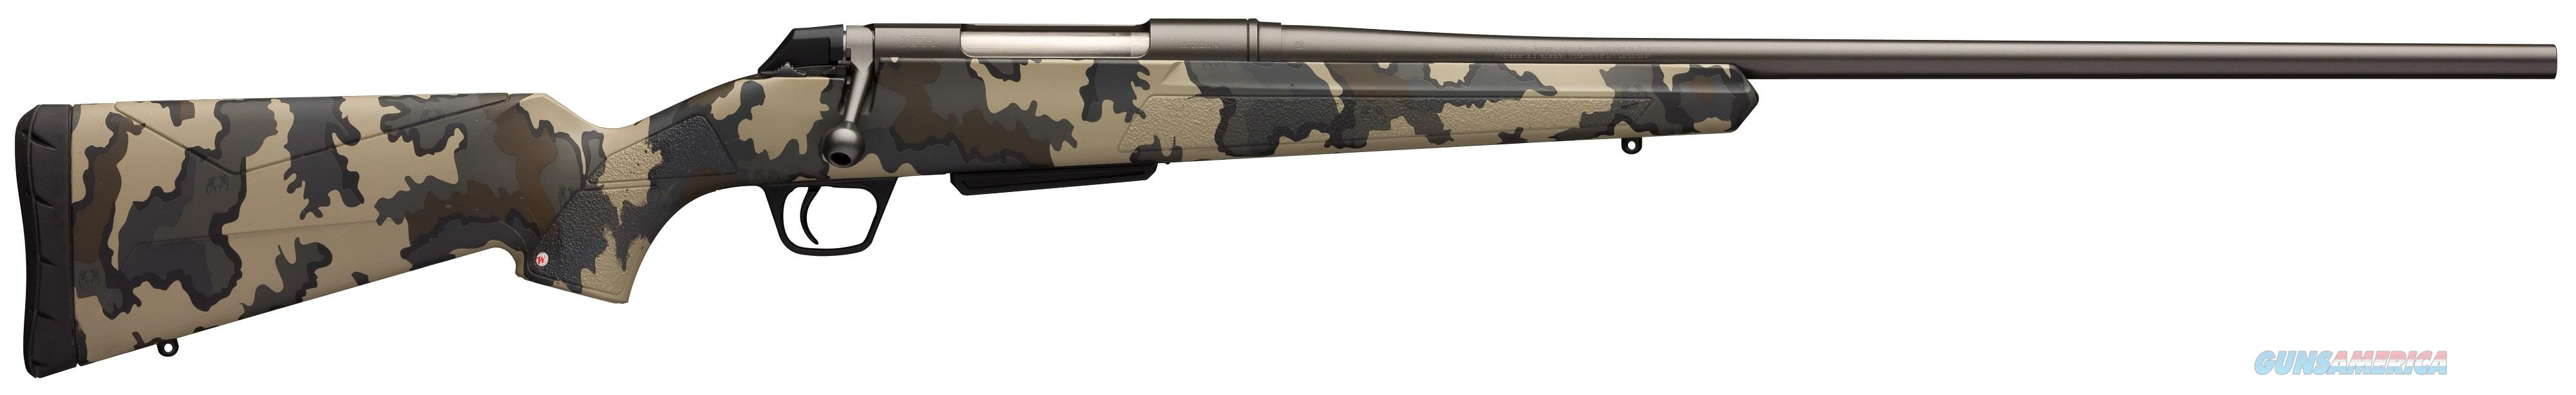 Winchester XPR Hunter Vias .30-06  Guns > Rifles > Winchester Rifles - Modern Bolt/Auto/Single > Other Bolt Action